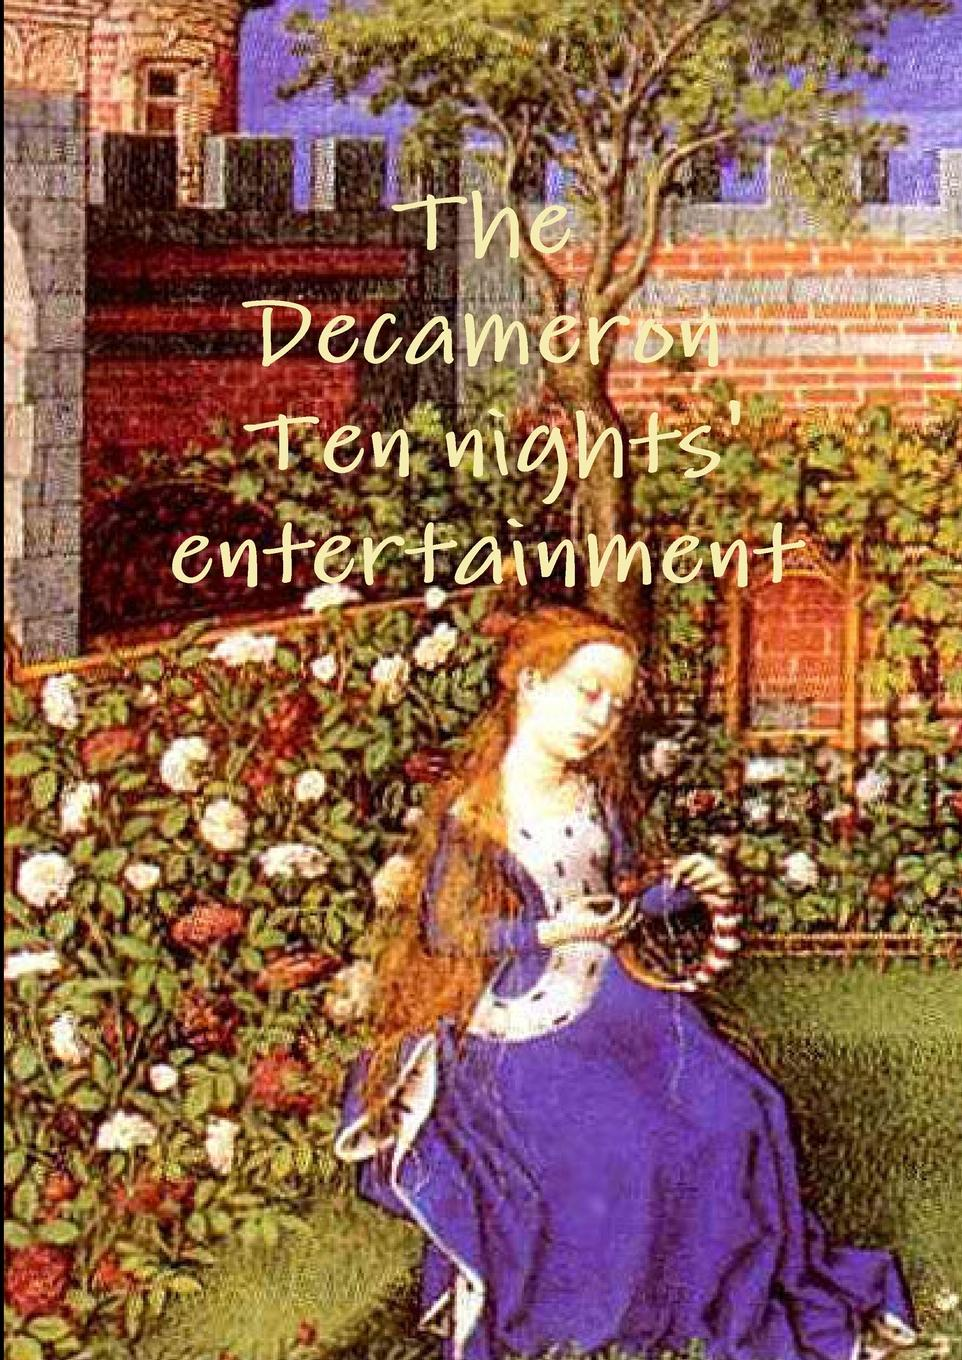 Giovanni Boccaccio The Decameron Ten Night. Entertainment the son of the night in contemporary literary works the chinese version one of the ten china s top 2015 books